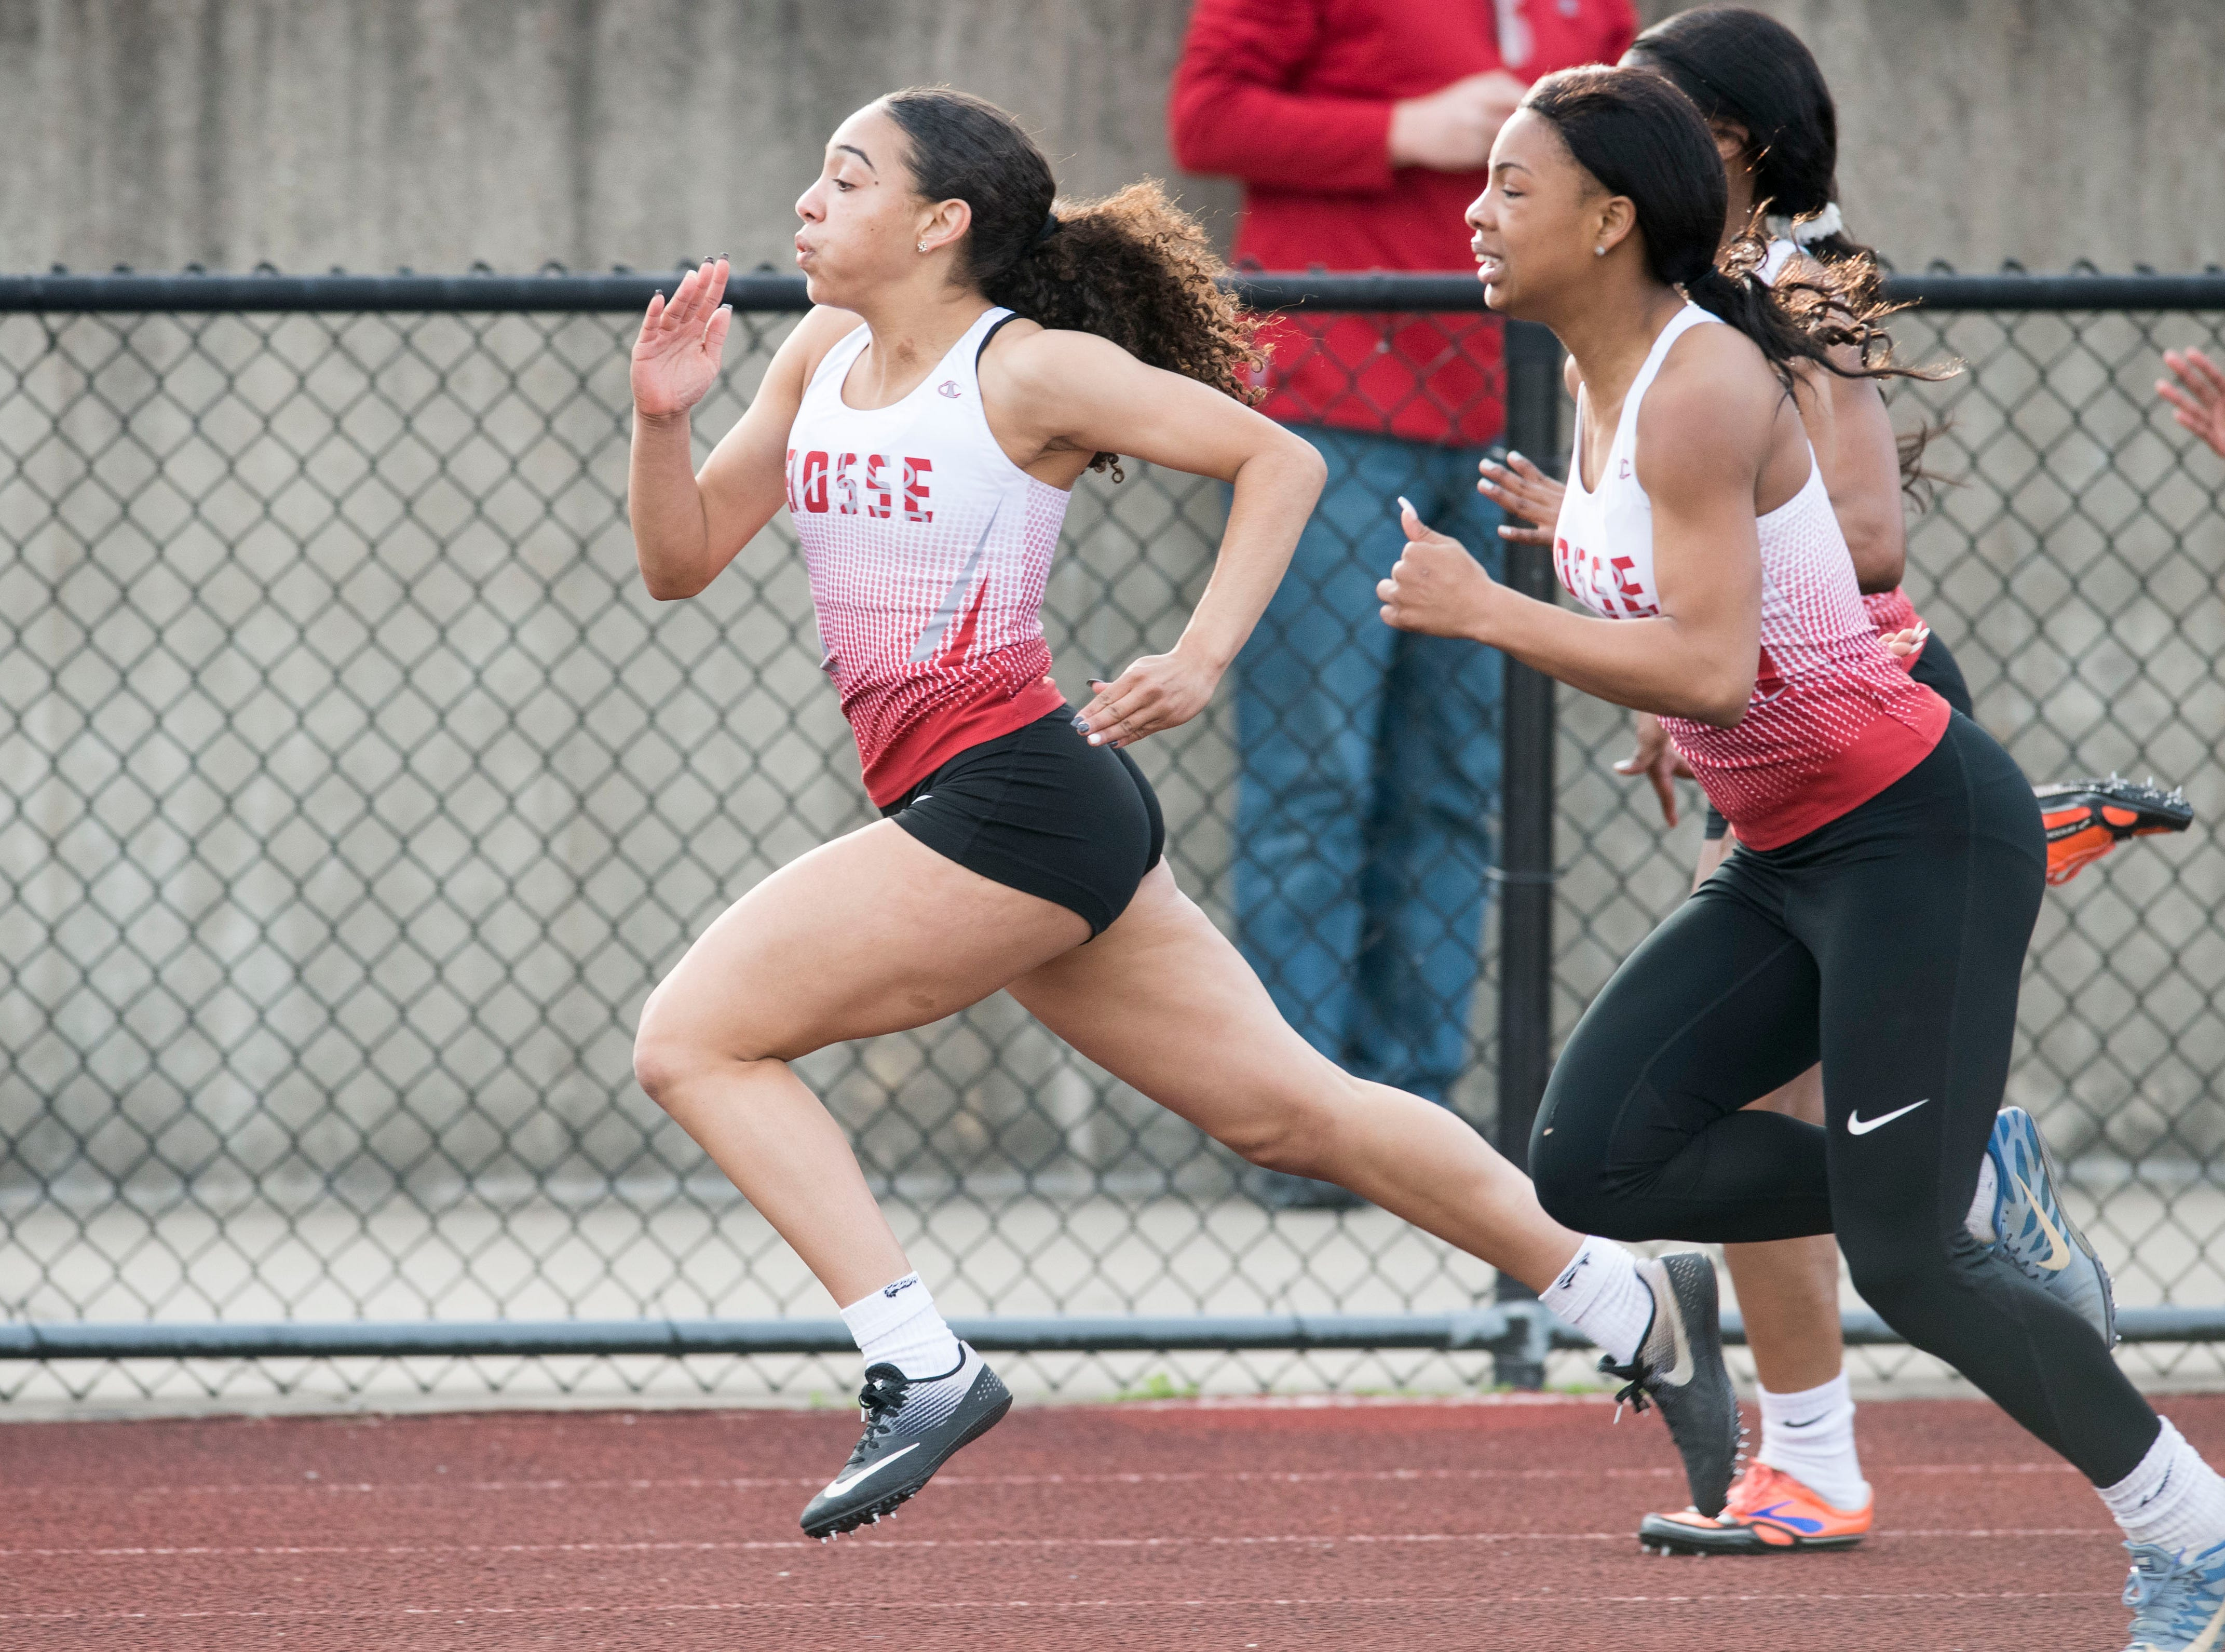 Bosse's Mallory Landor leads the pack in the girls 100m dash event during the 2019 City Track and Field meet at Central High School Friday, April 12, 2019.